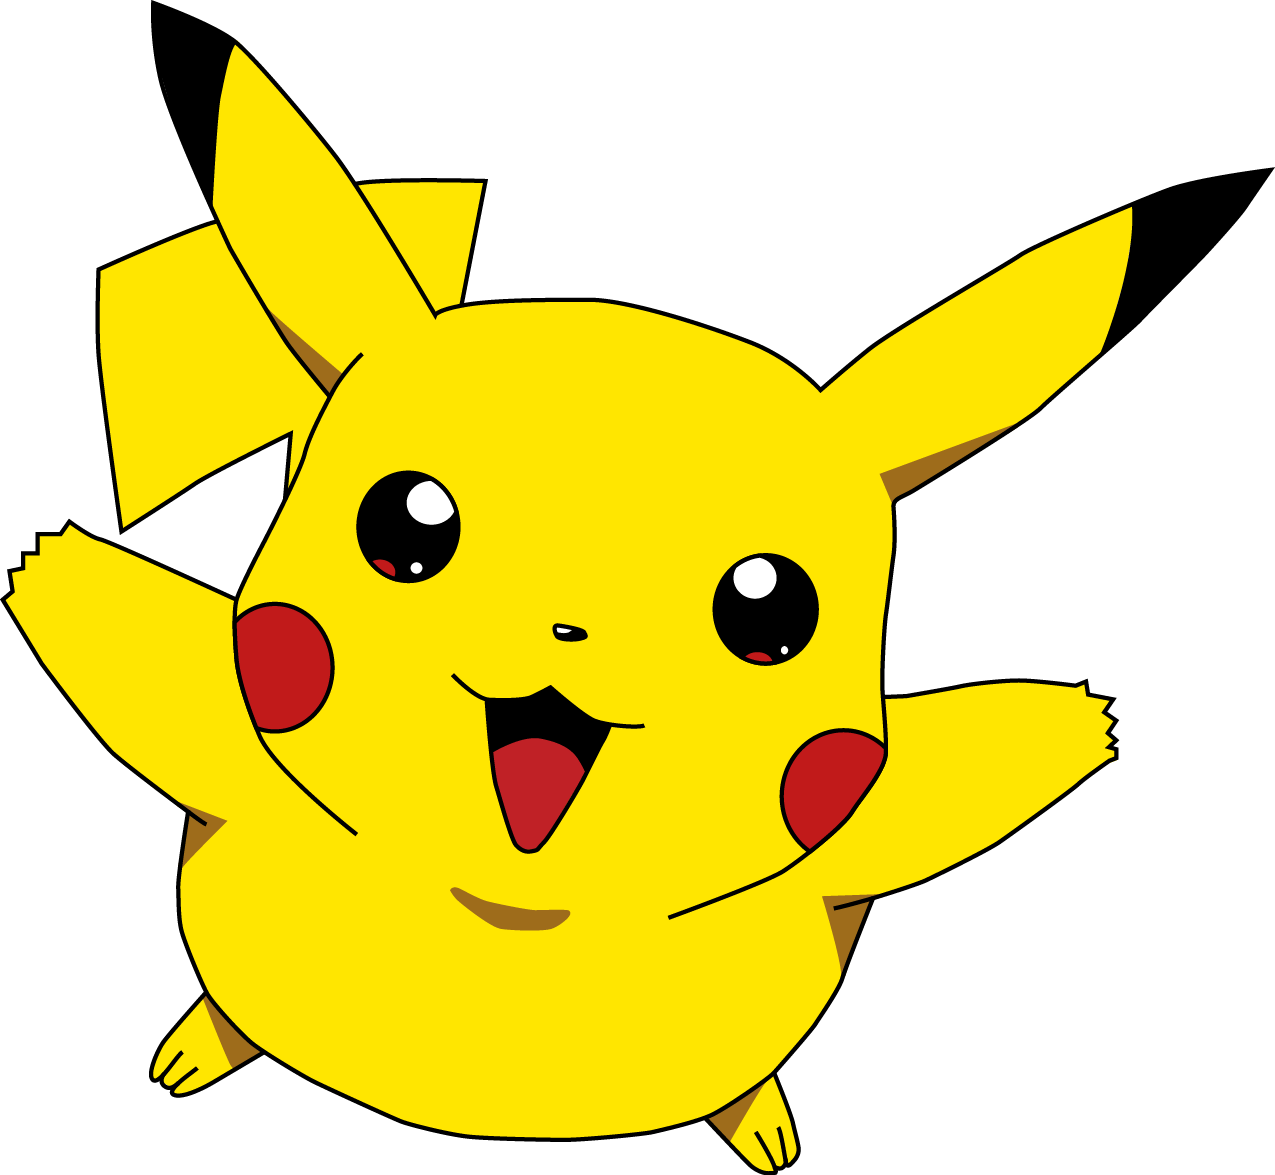 Dancing pikachu png. Advanced martial arts s